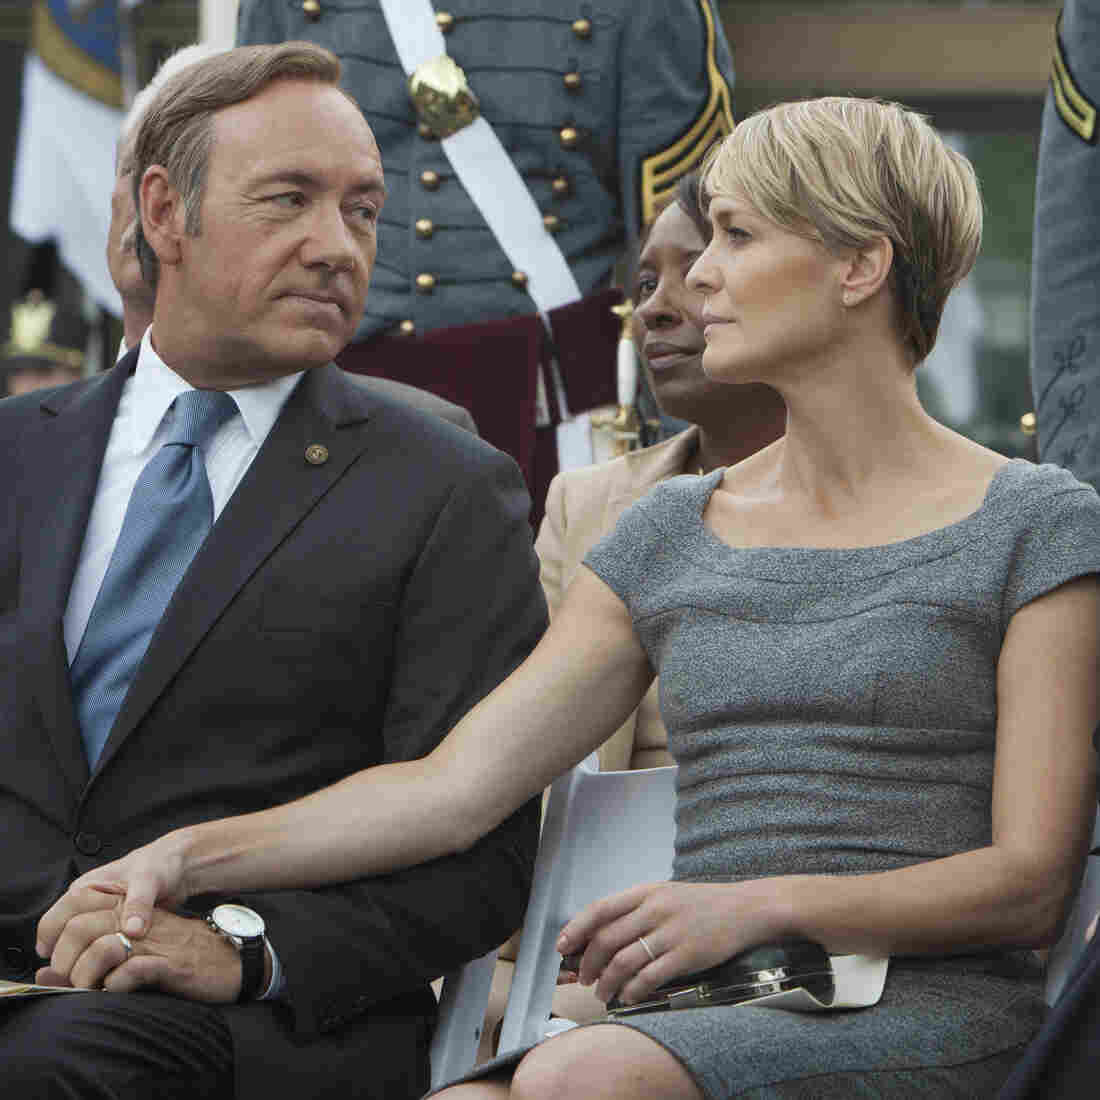 Kevin Spacey (left) and Robin Wright star in House of Cards, directed by David Fincher. The Netflix series, which follows a Machiavellian politician, is an adaptation of a BBC series of the same name. Hear an interview with Spacey and Fincher.